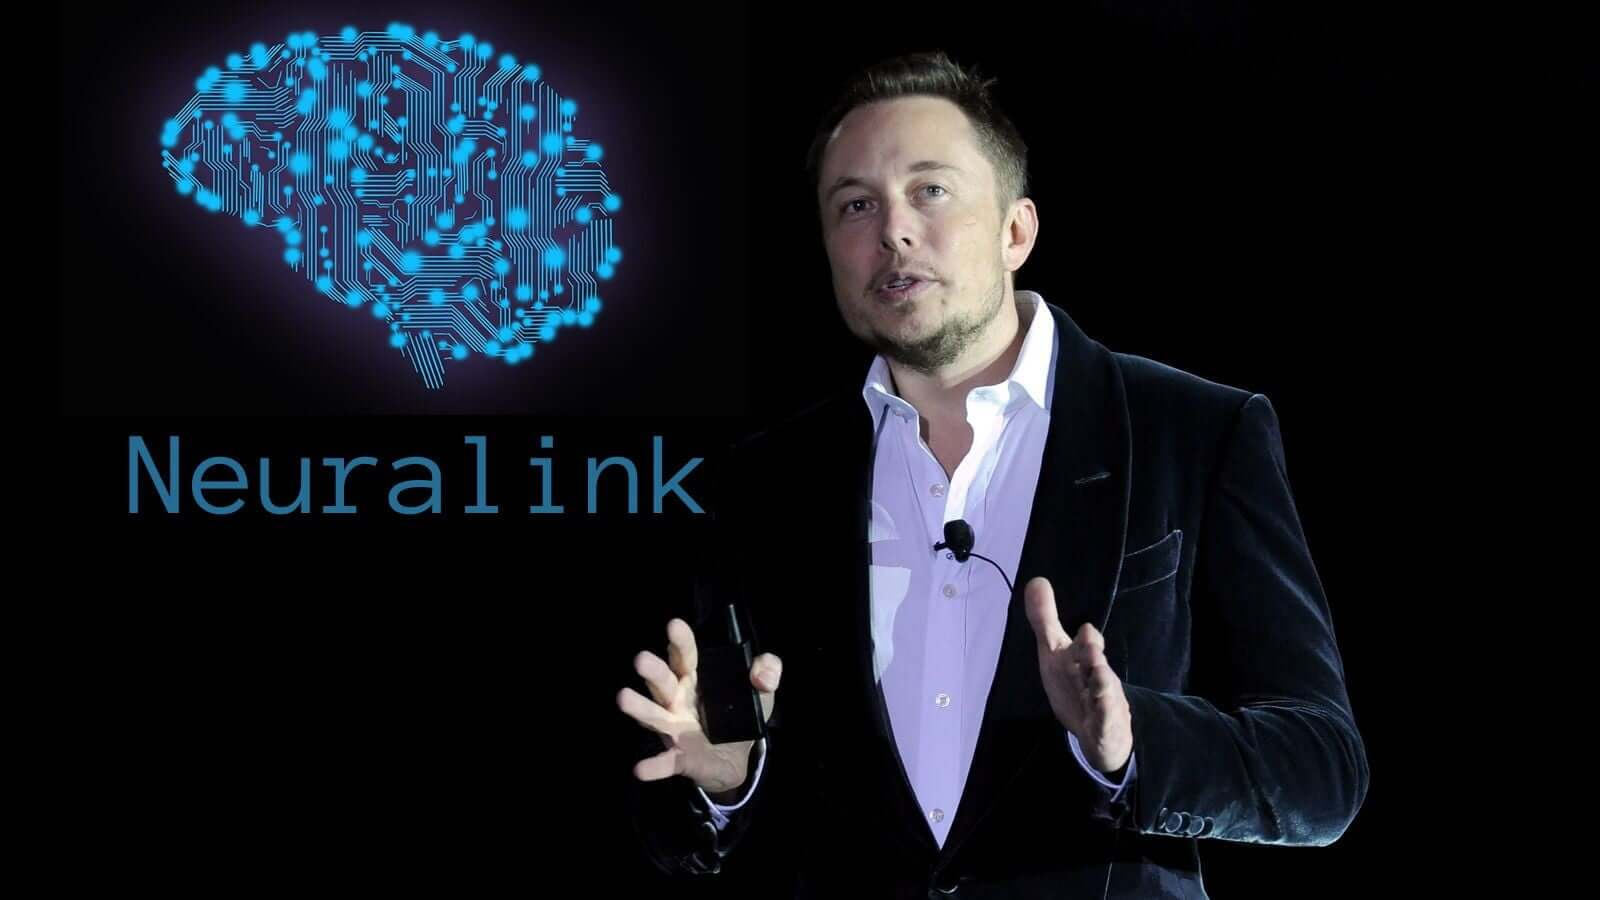 What we know about Elon Musk's 'dramatic' plan to link human brains